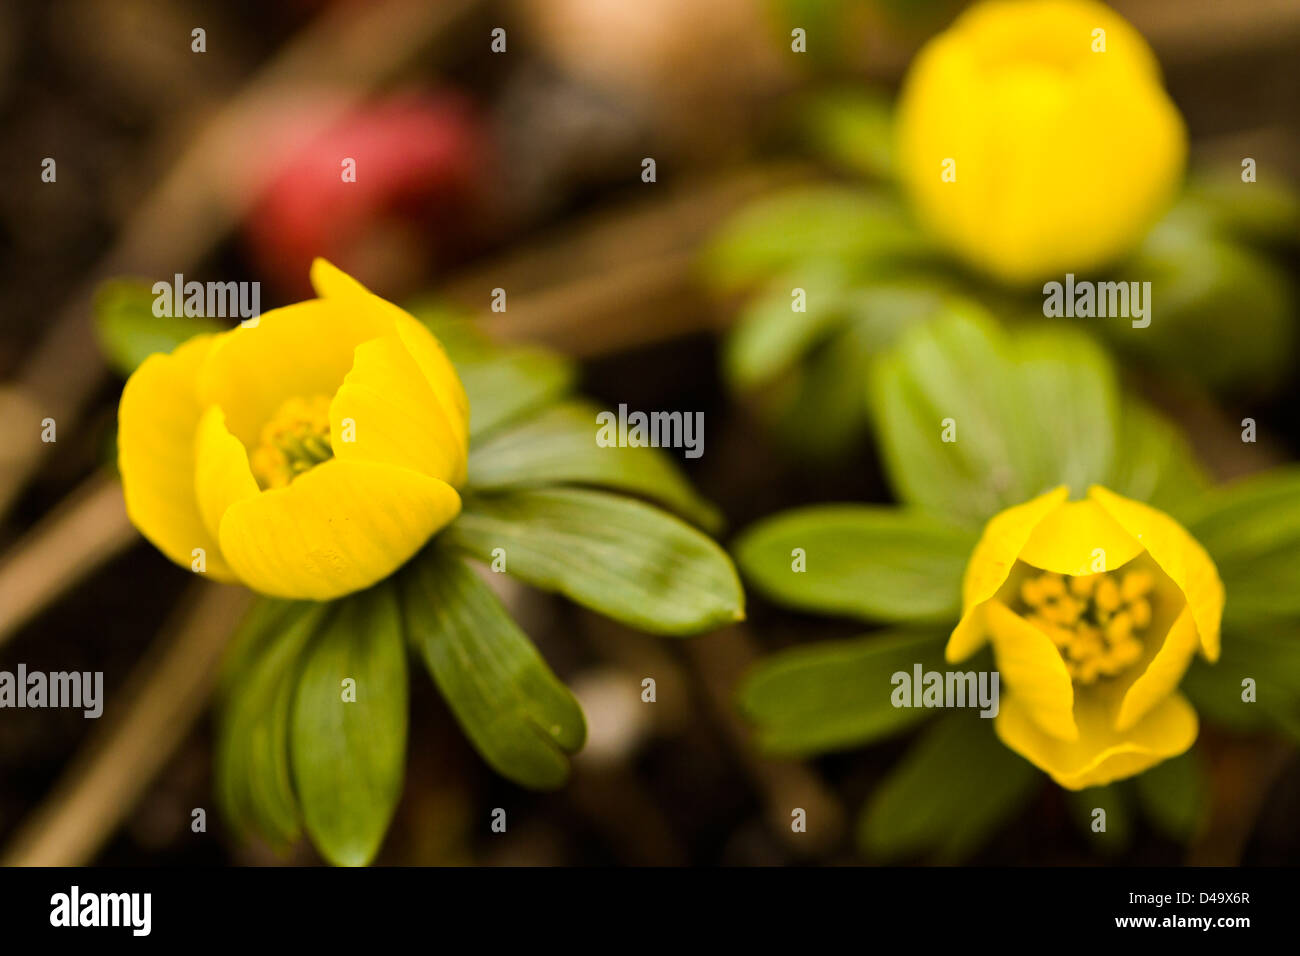 One Of The Earliest Spring Flowers To Emerge Out Of The Ground Is